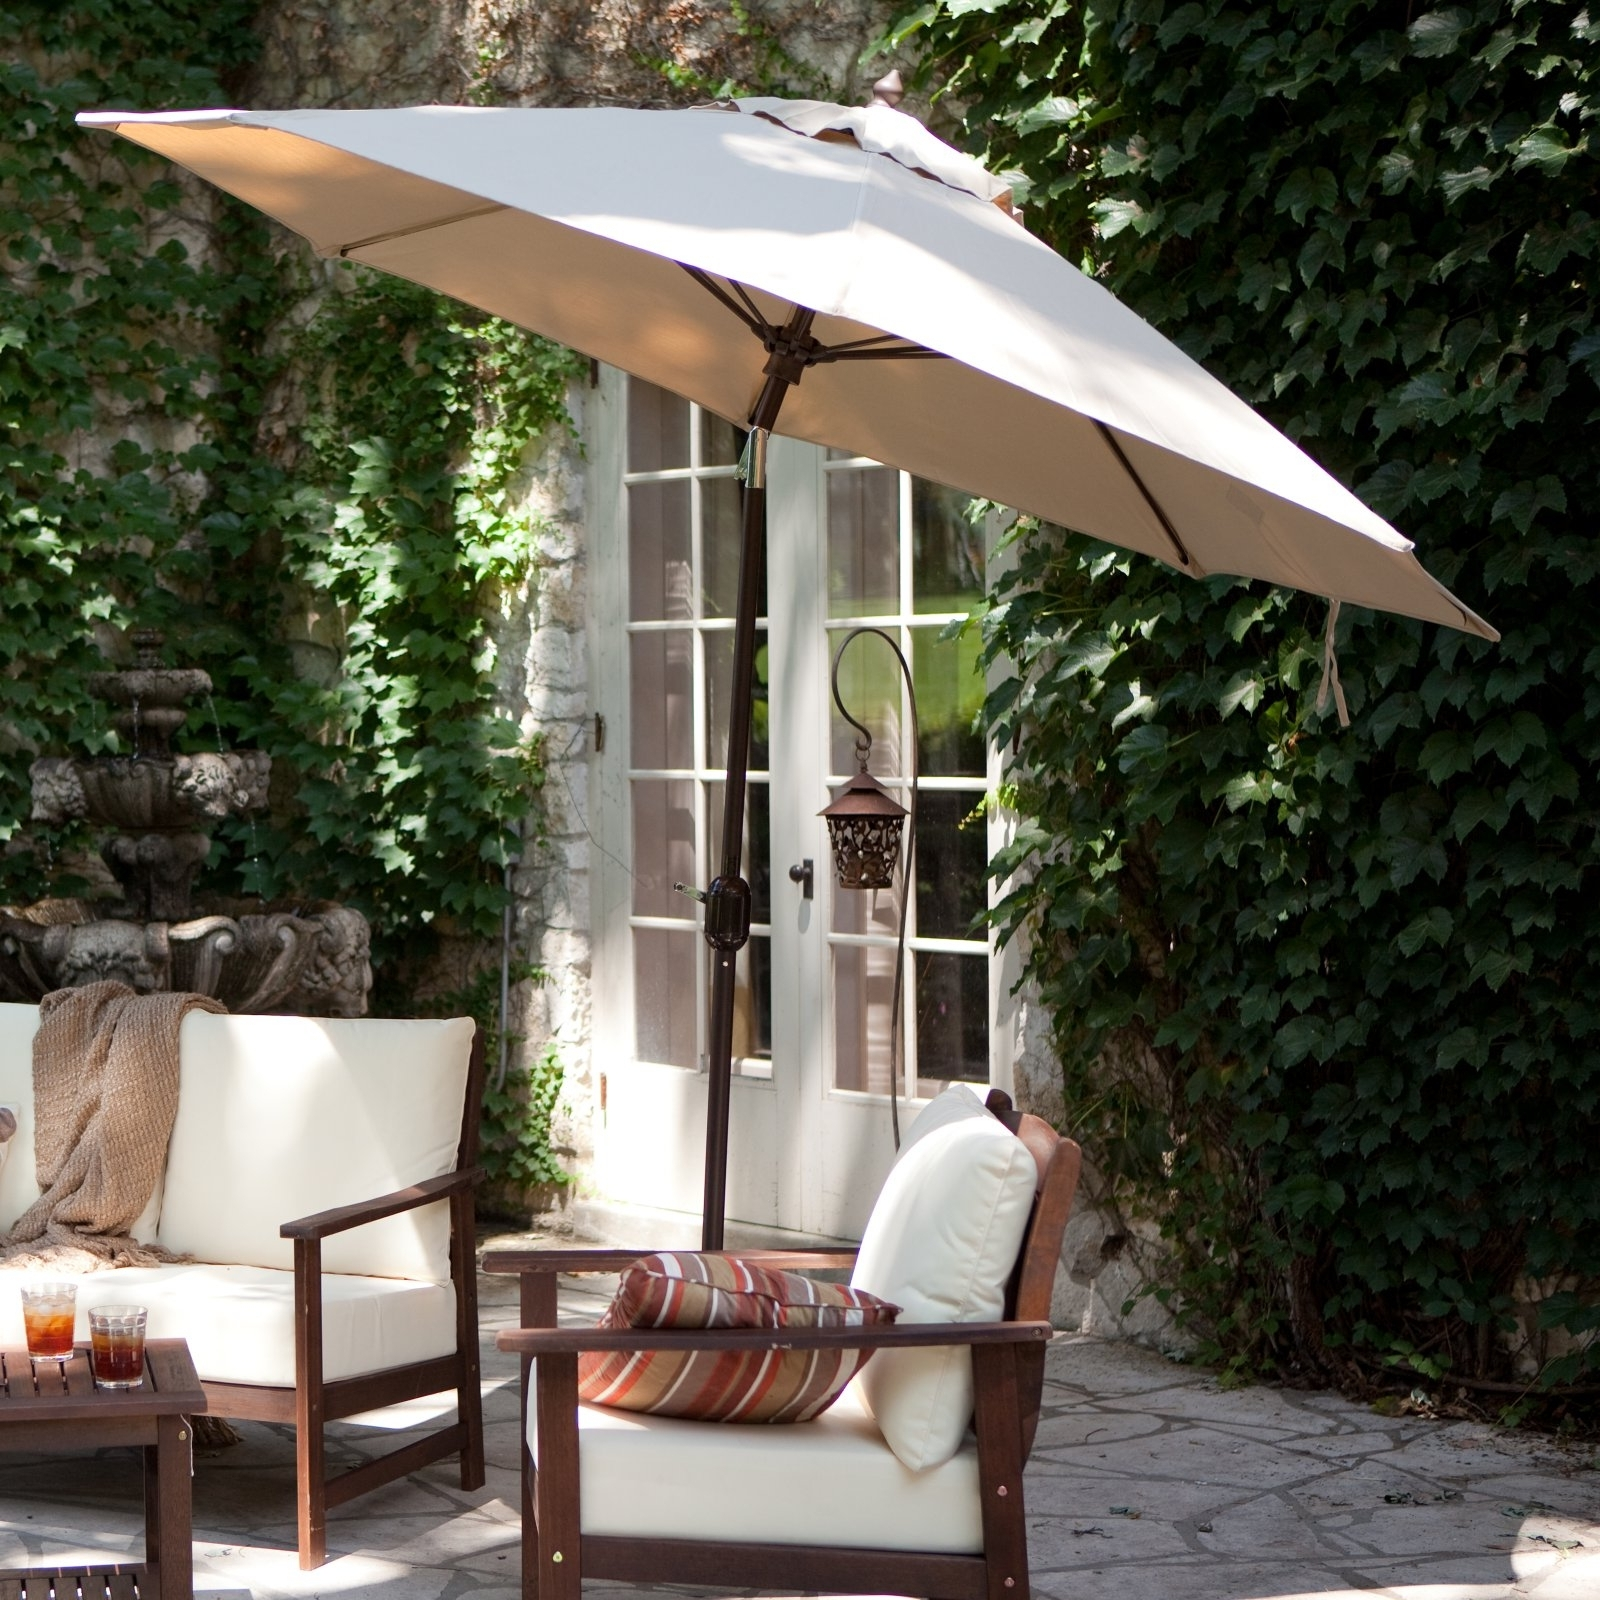 Newest Free Standing Umbrellas For Patio • Patio Ideas Pertaining To Free Standing Umbrellas For Patio (Gallery 1 of 20)